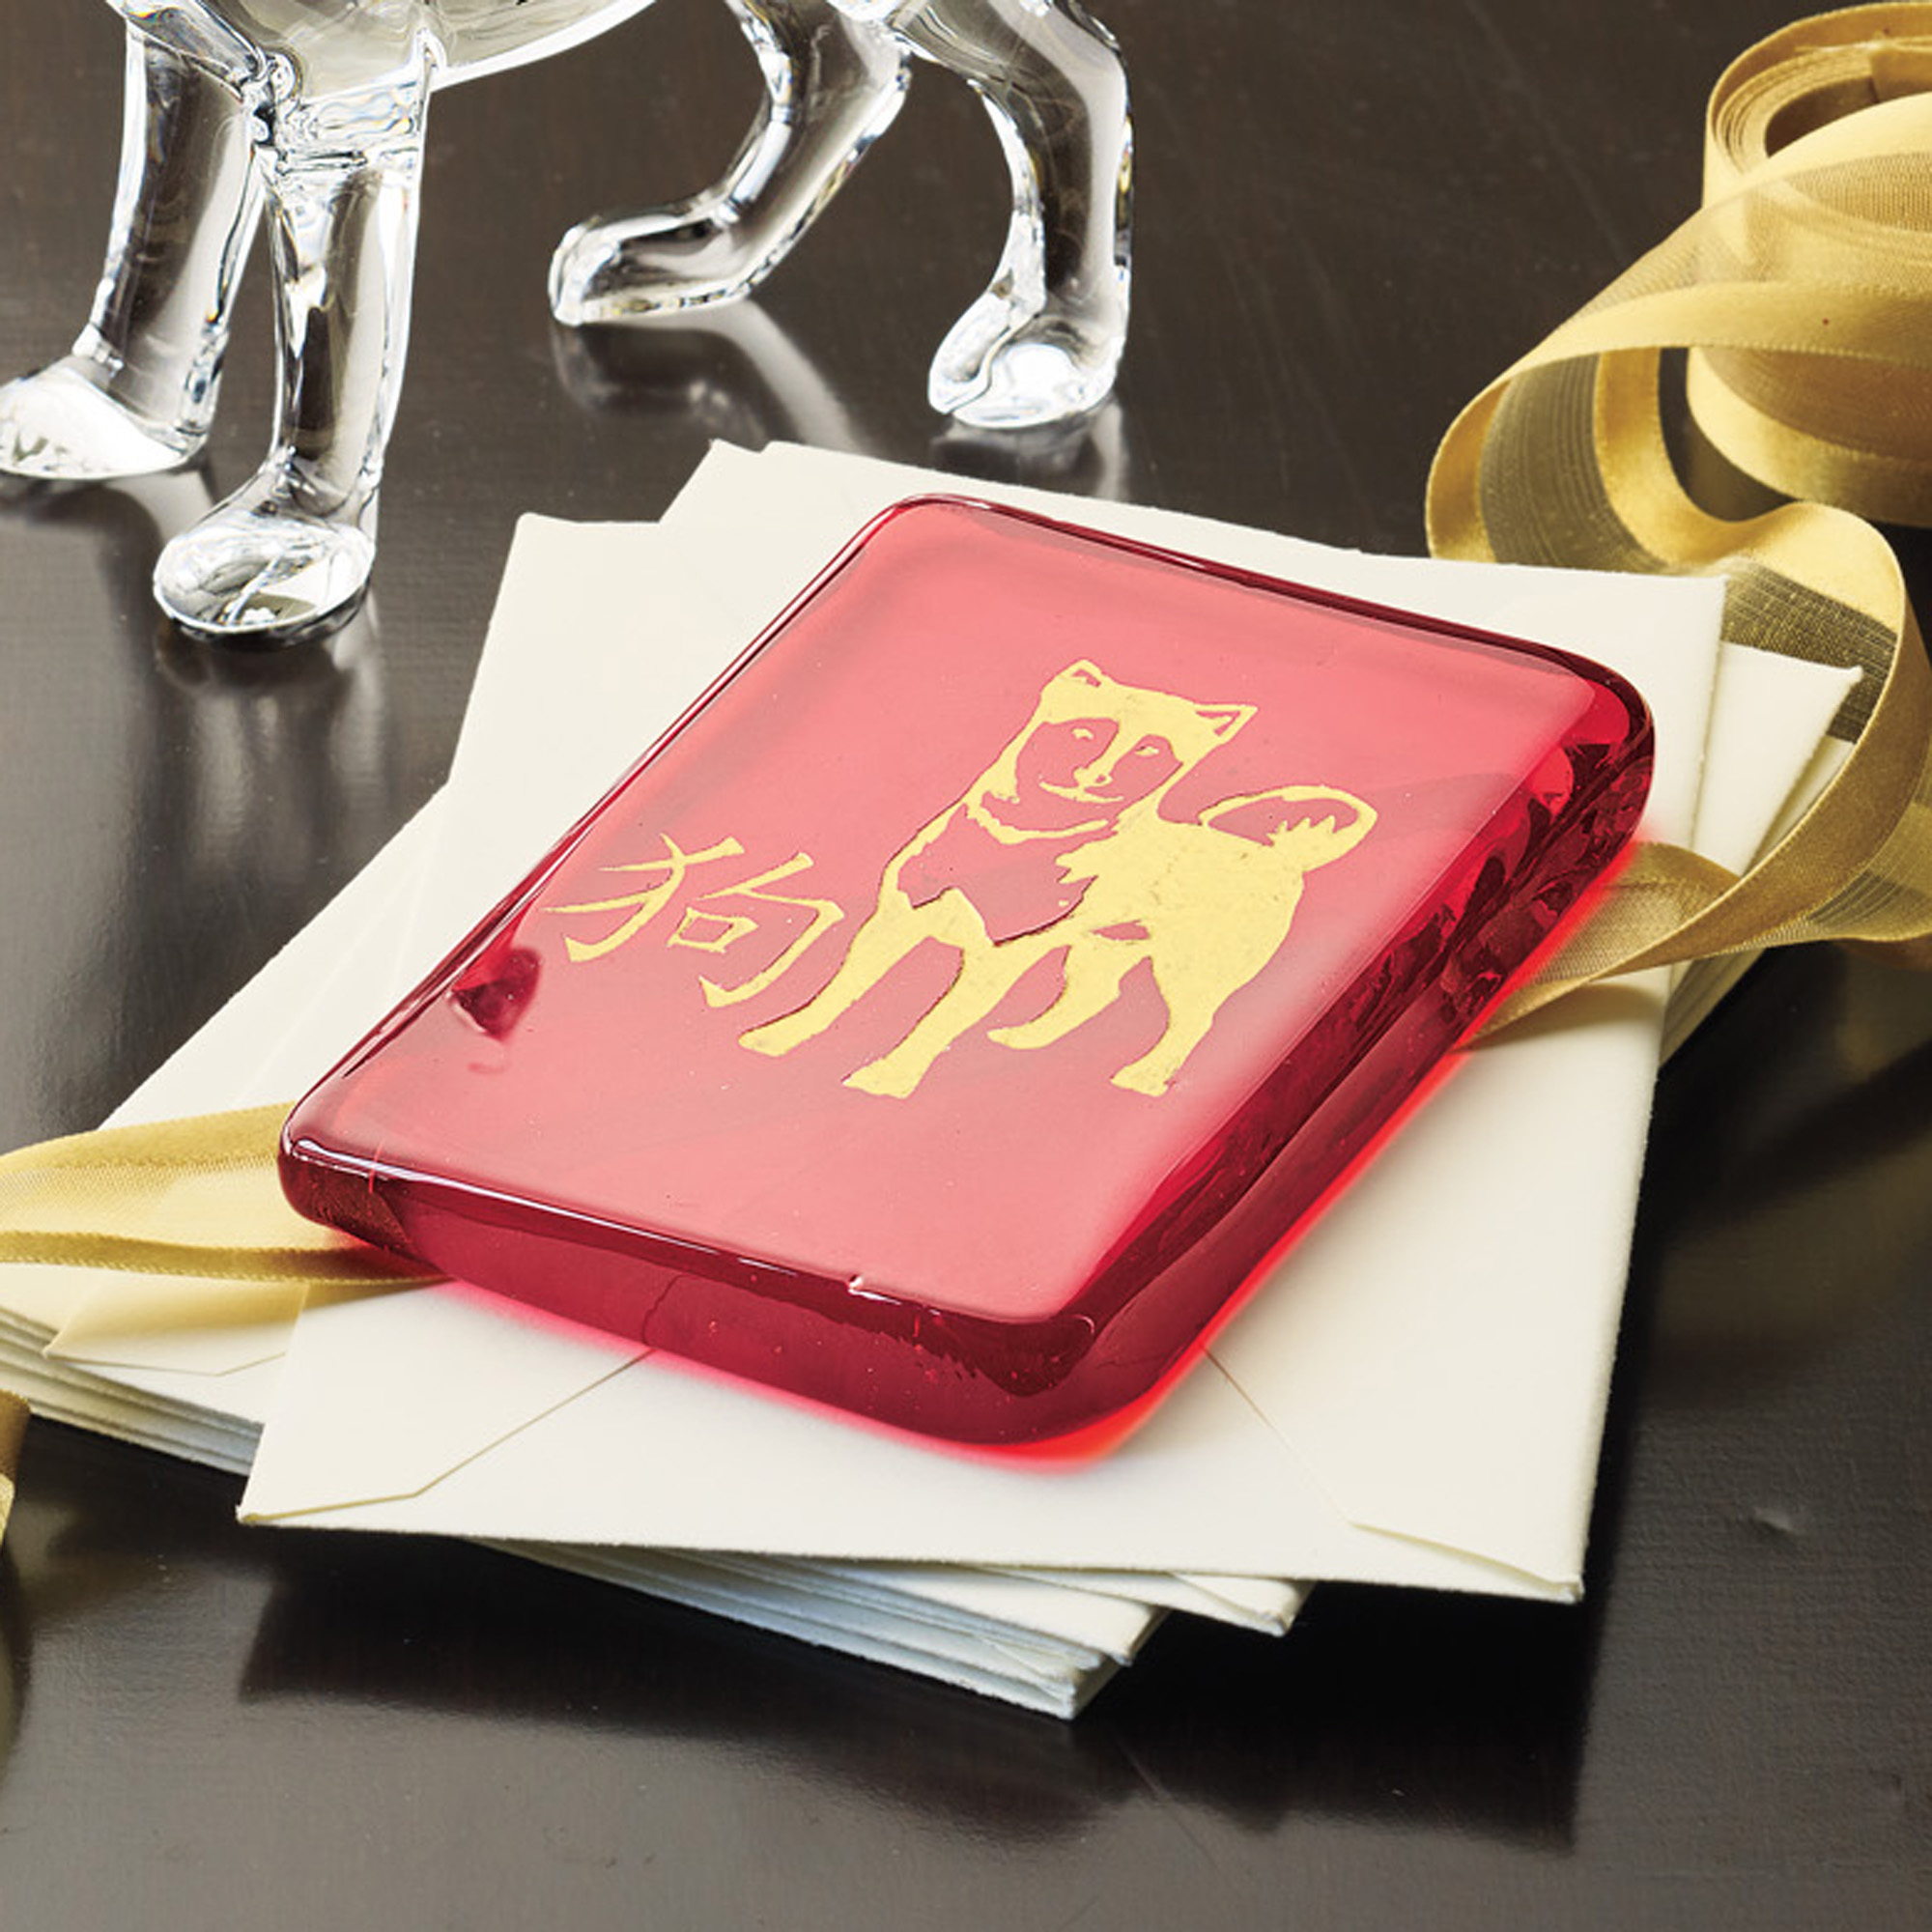 2018 Year Of The Dog Red Envelope Paperweight